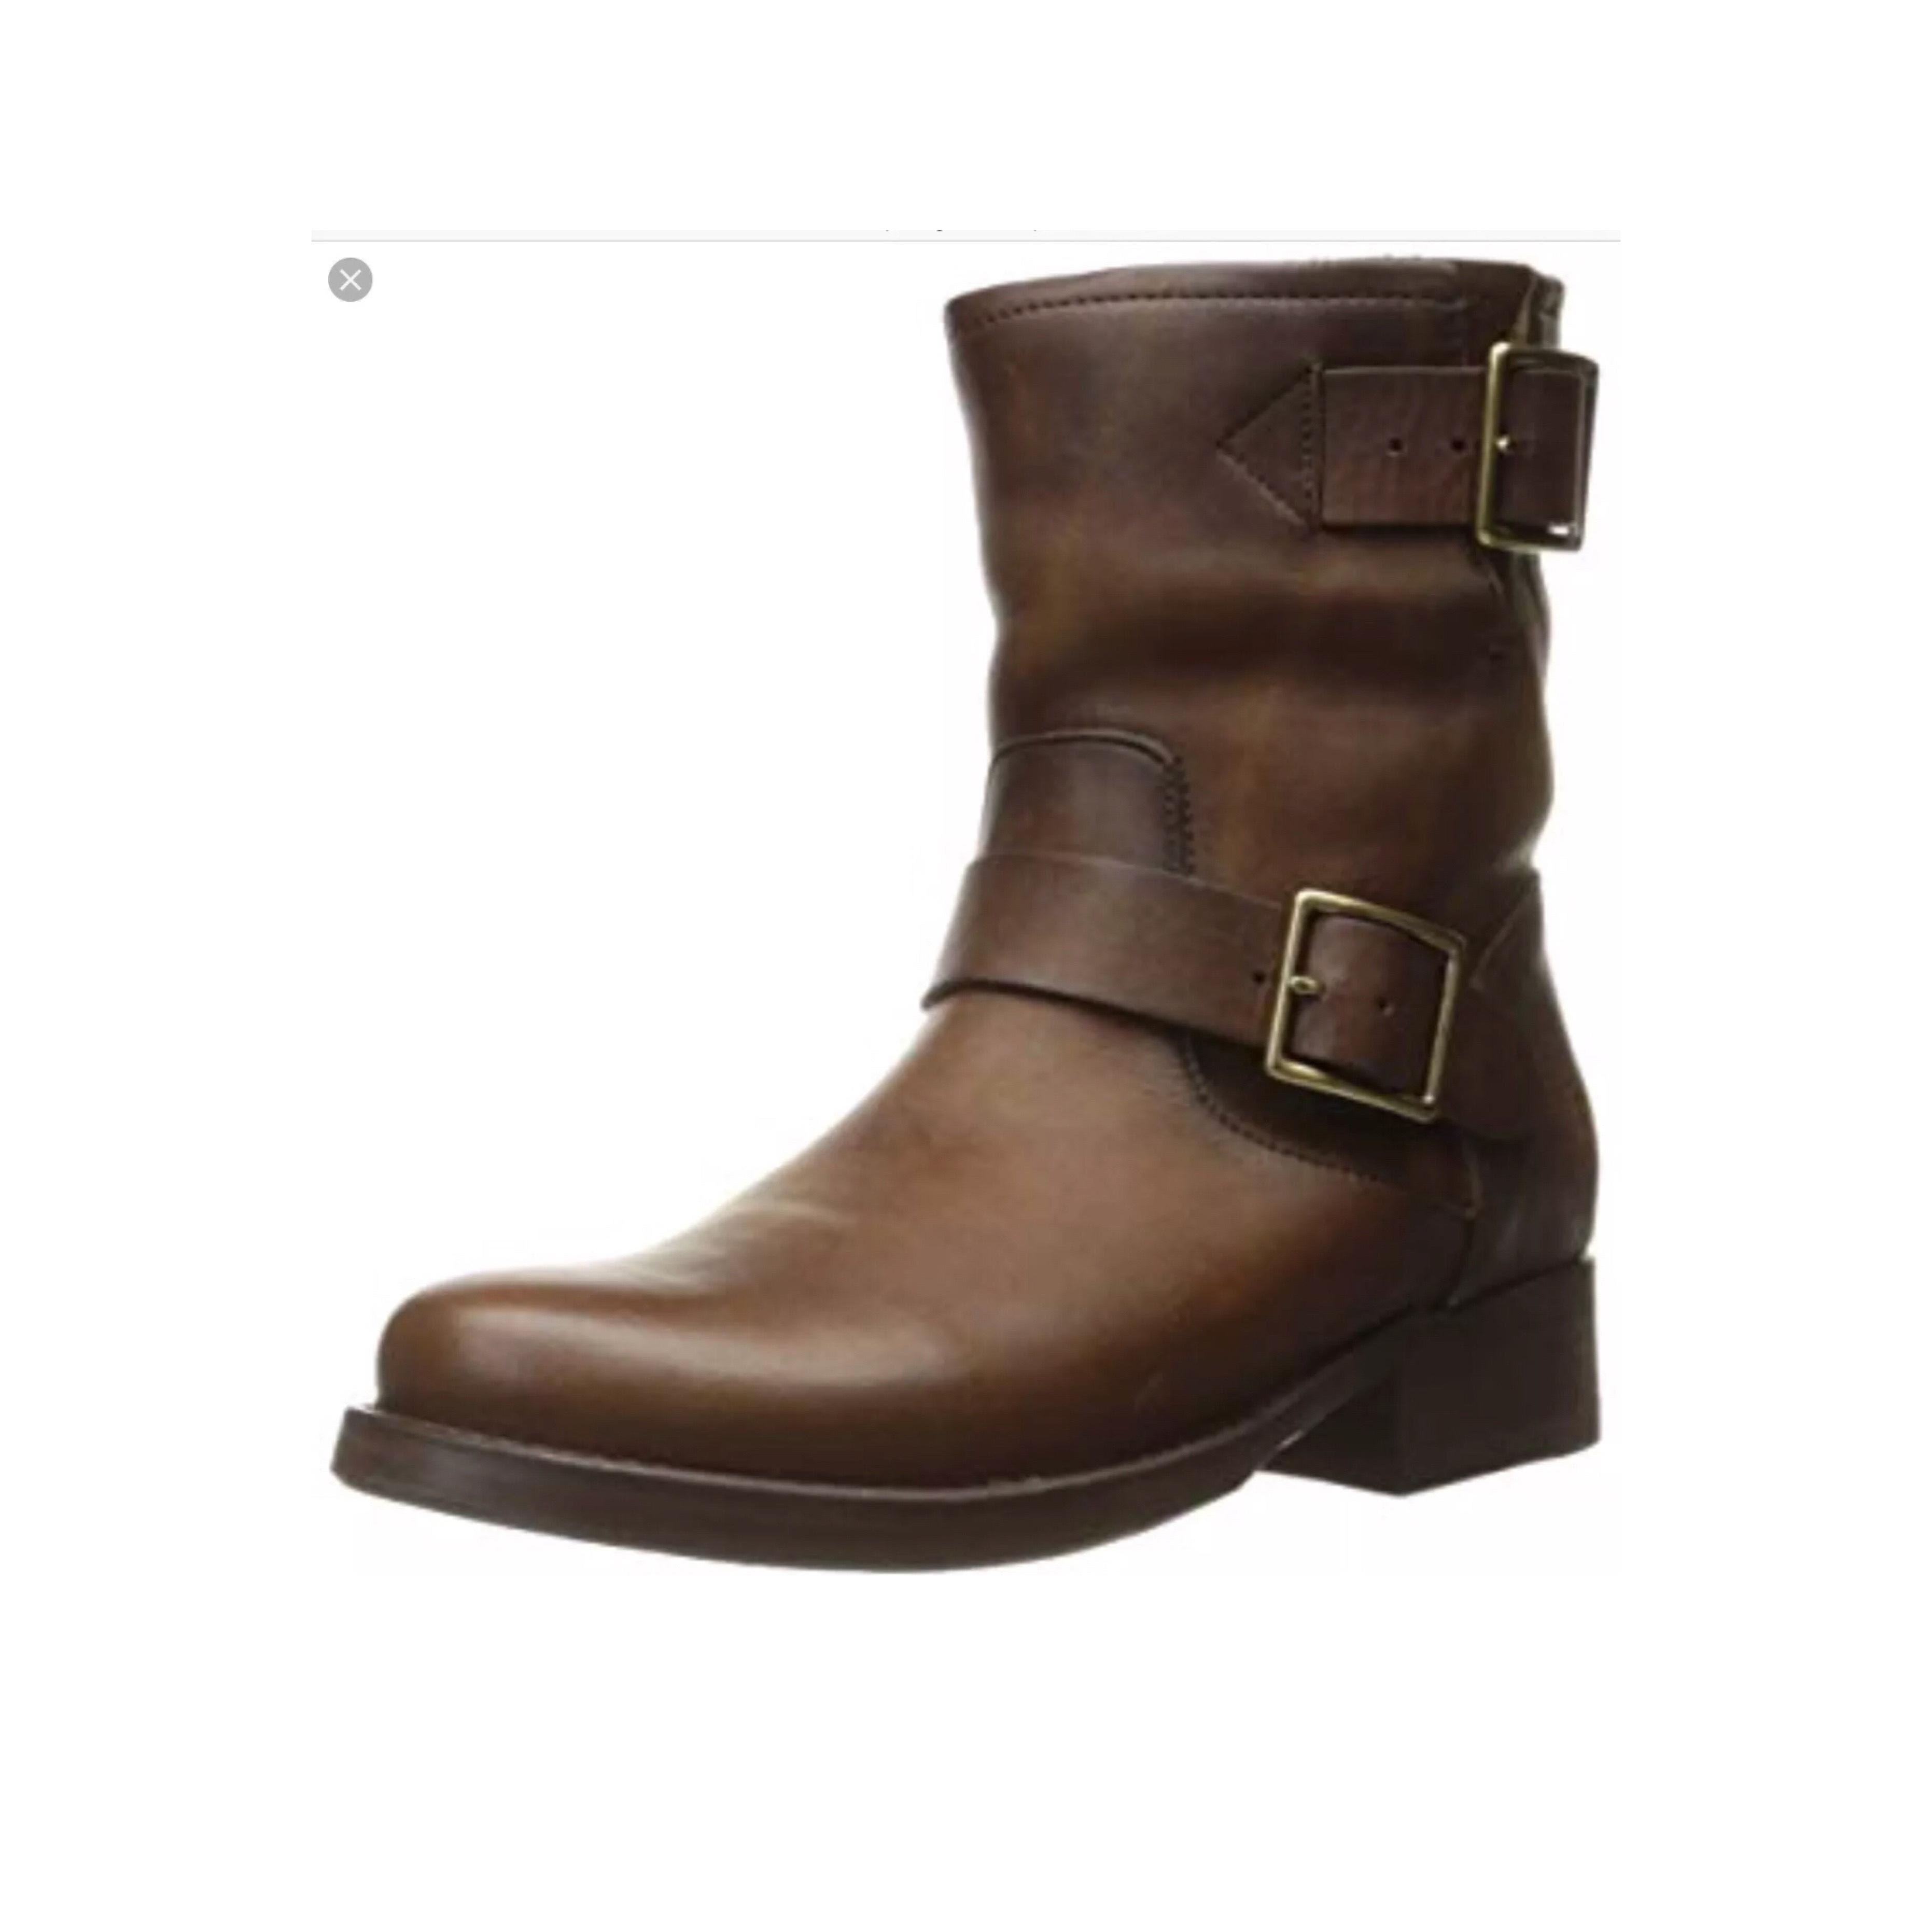 3b7c1771d786 Frye US Vicky Engineer Boots Booties Size US Frye 6.5 Regular (M